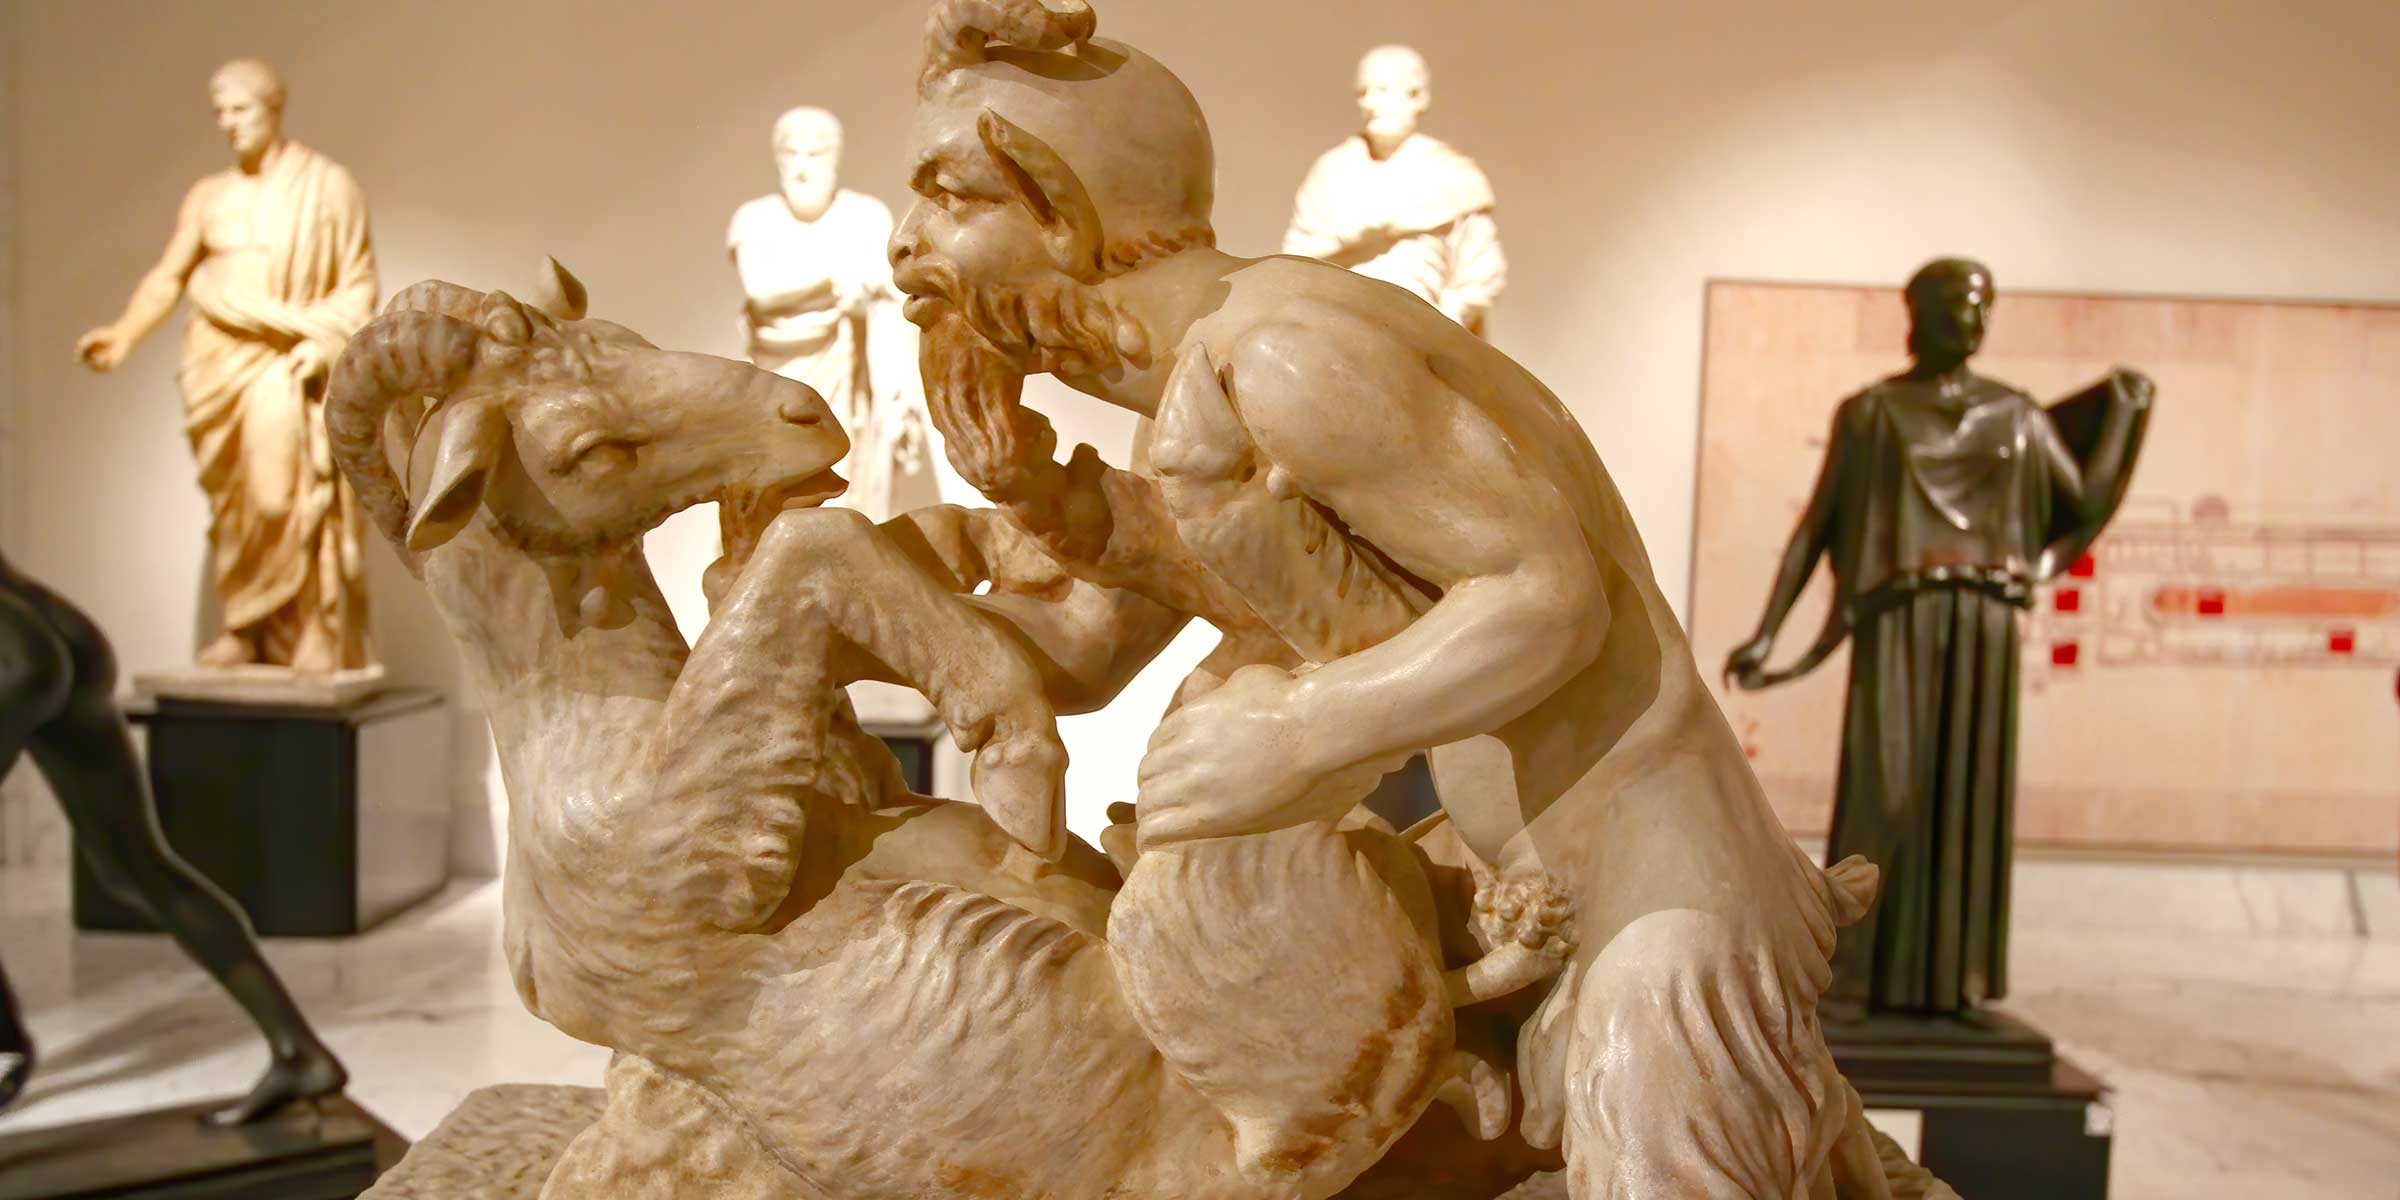 Italy-Naples-National-Archaeological-Museum-Secret-Cabinet-erotic-sculpture Pan copulating with a goat